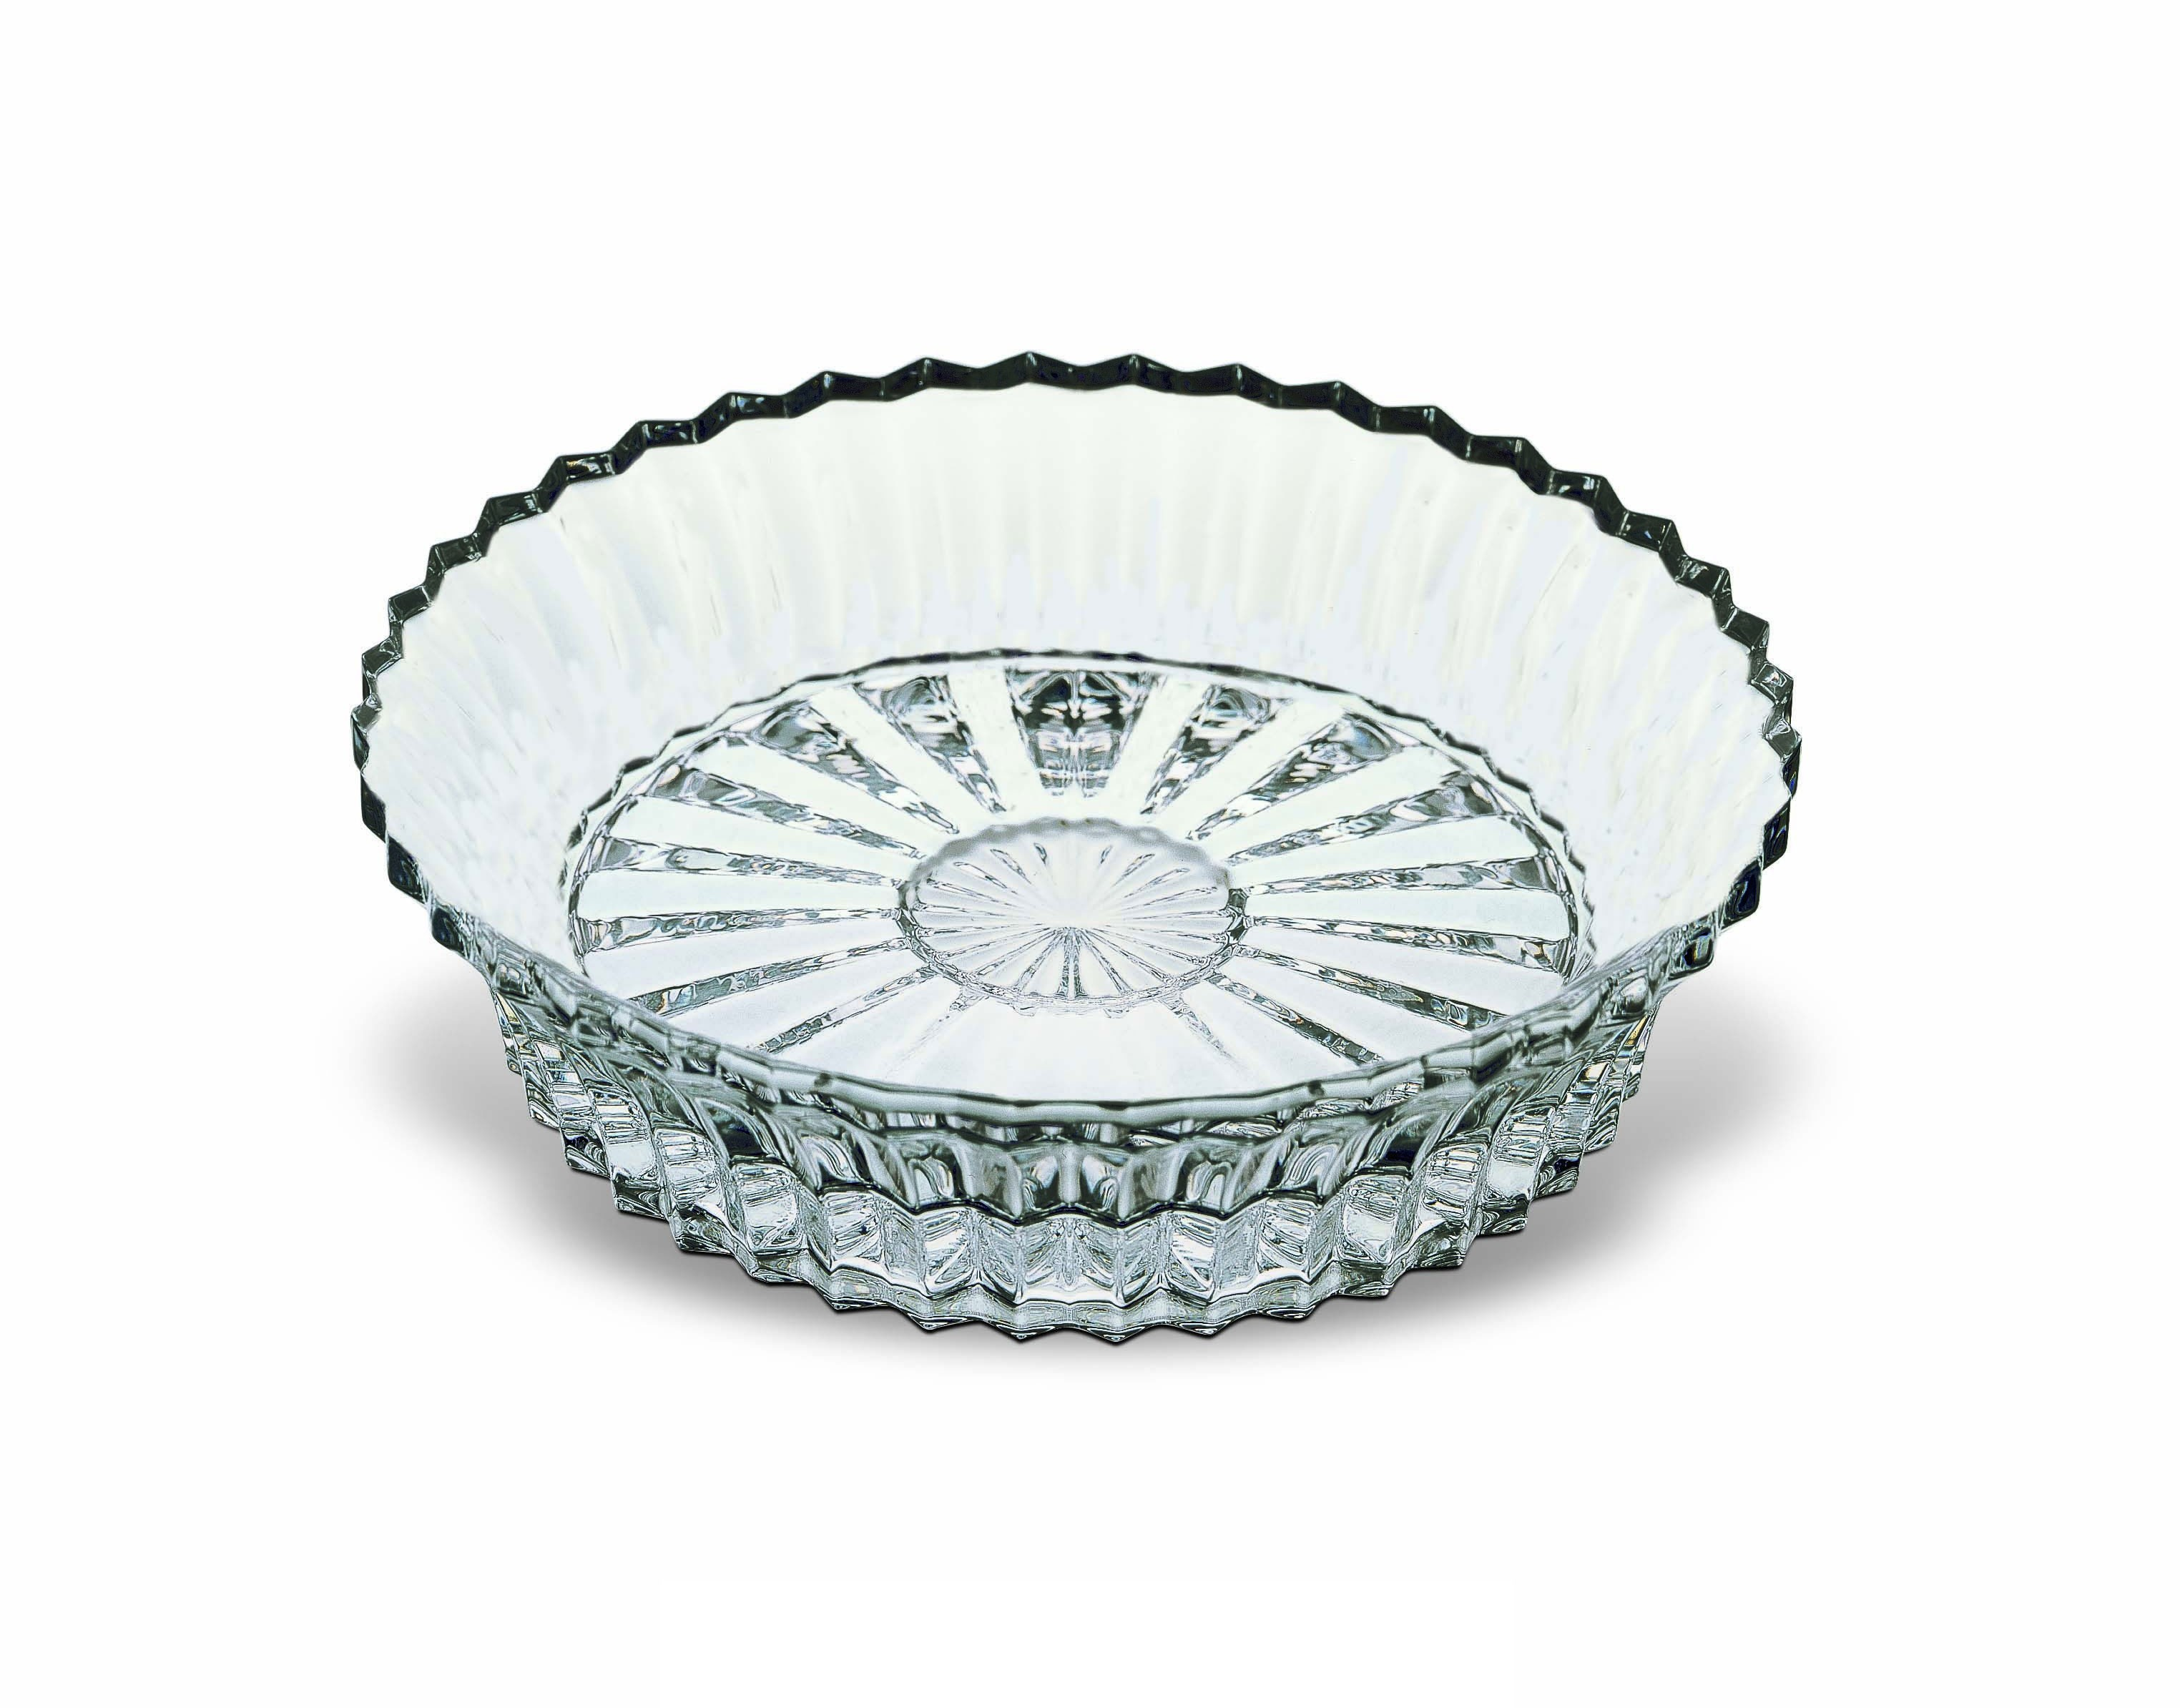 Baccarat Crystal Mille Nuits Wine Coaster